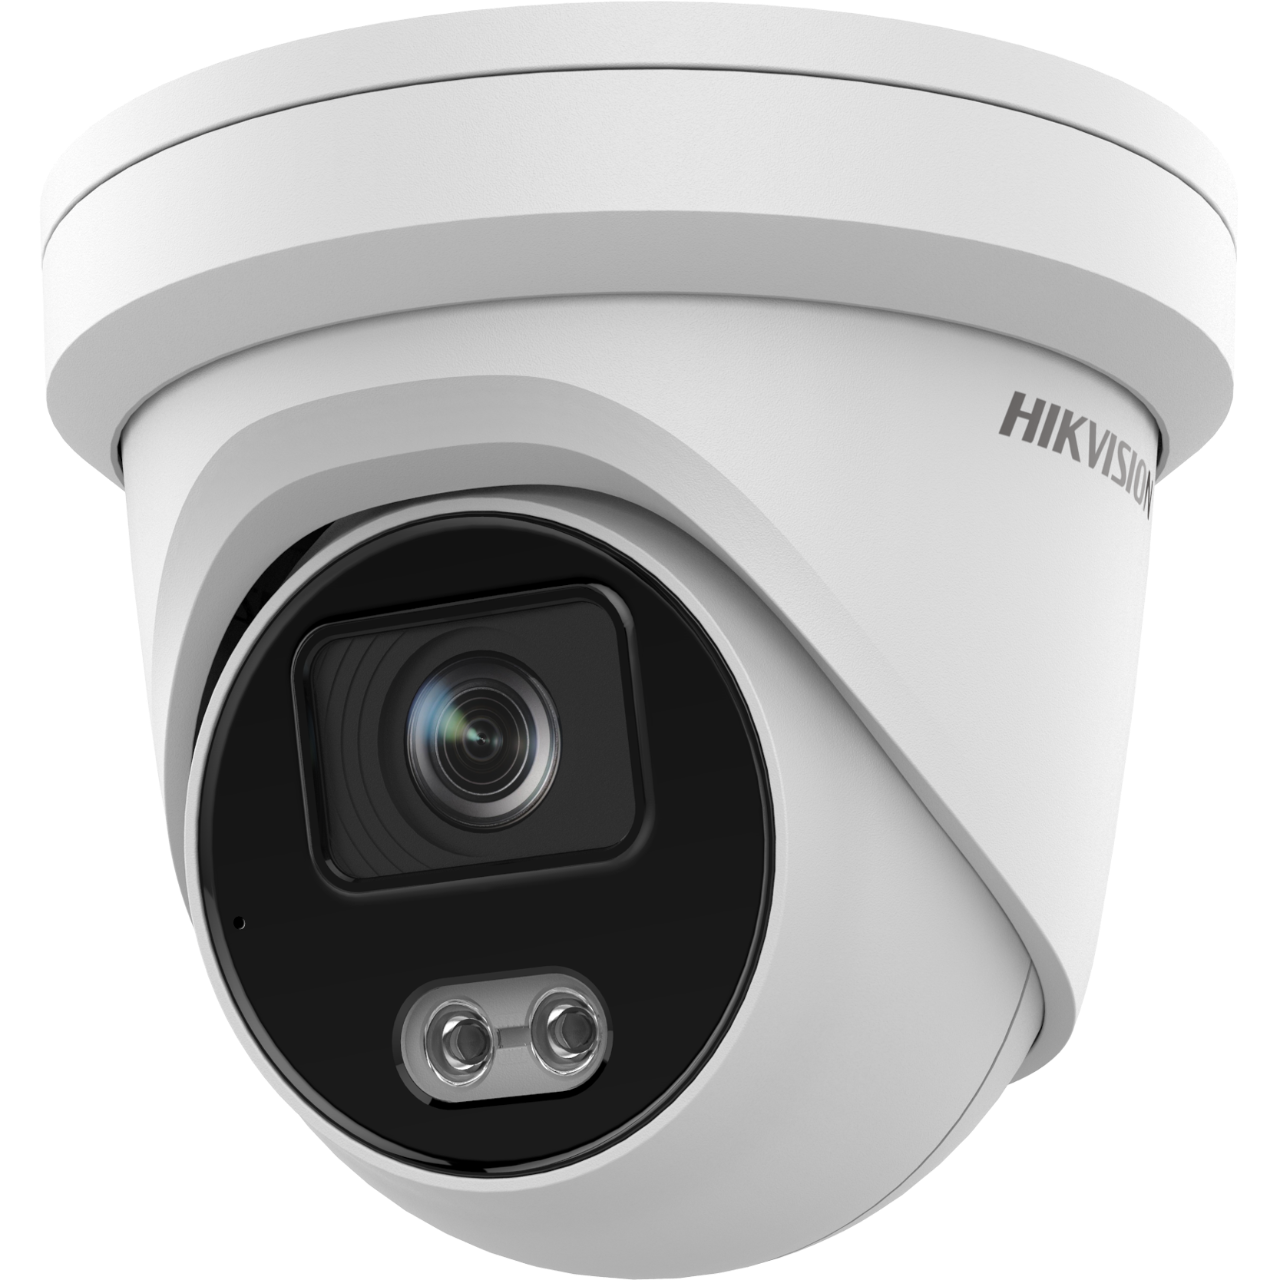 This camera features: - View images anywhere in the world via Hik-Connect. - Save images to NVR or SD card. - 2 Megapixel lens with 110° degree viewing angle. - 24/7 Color Image. - Micro SD slot up to 128GB. - False alarm filter.